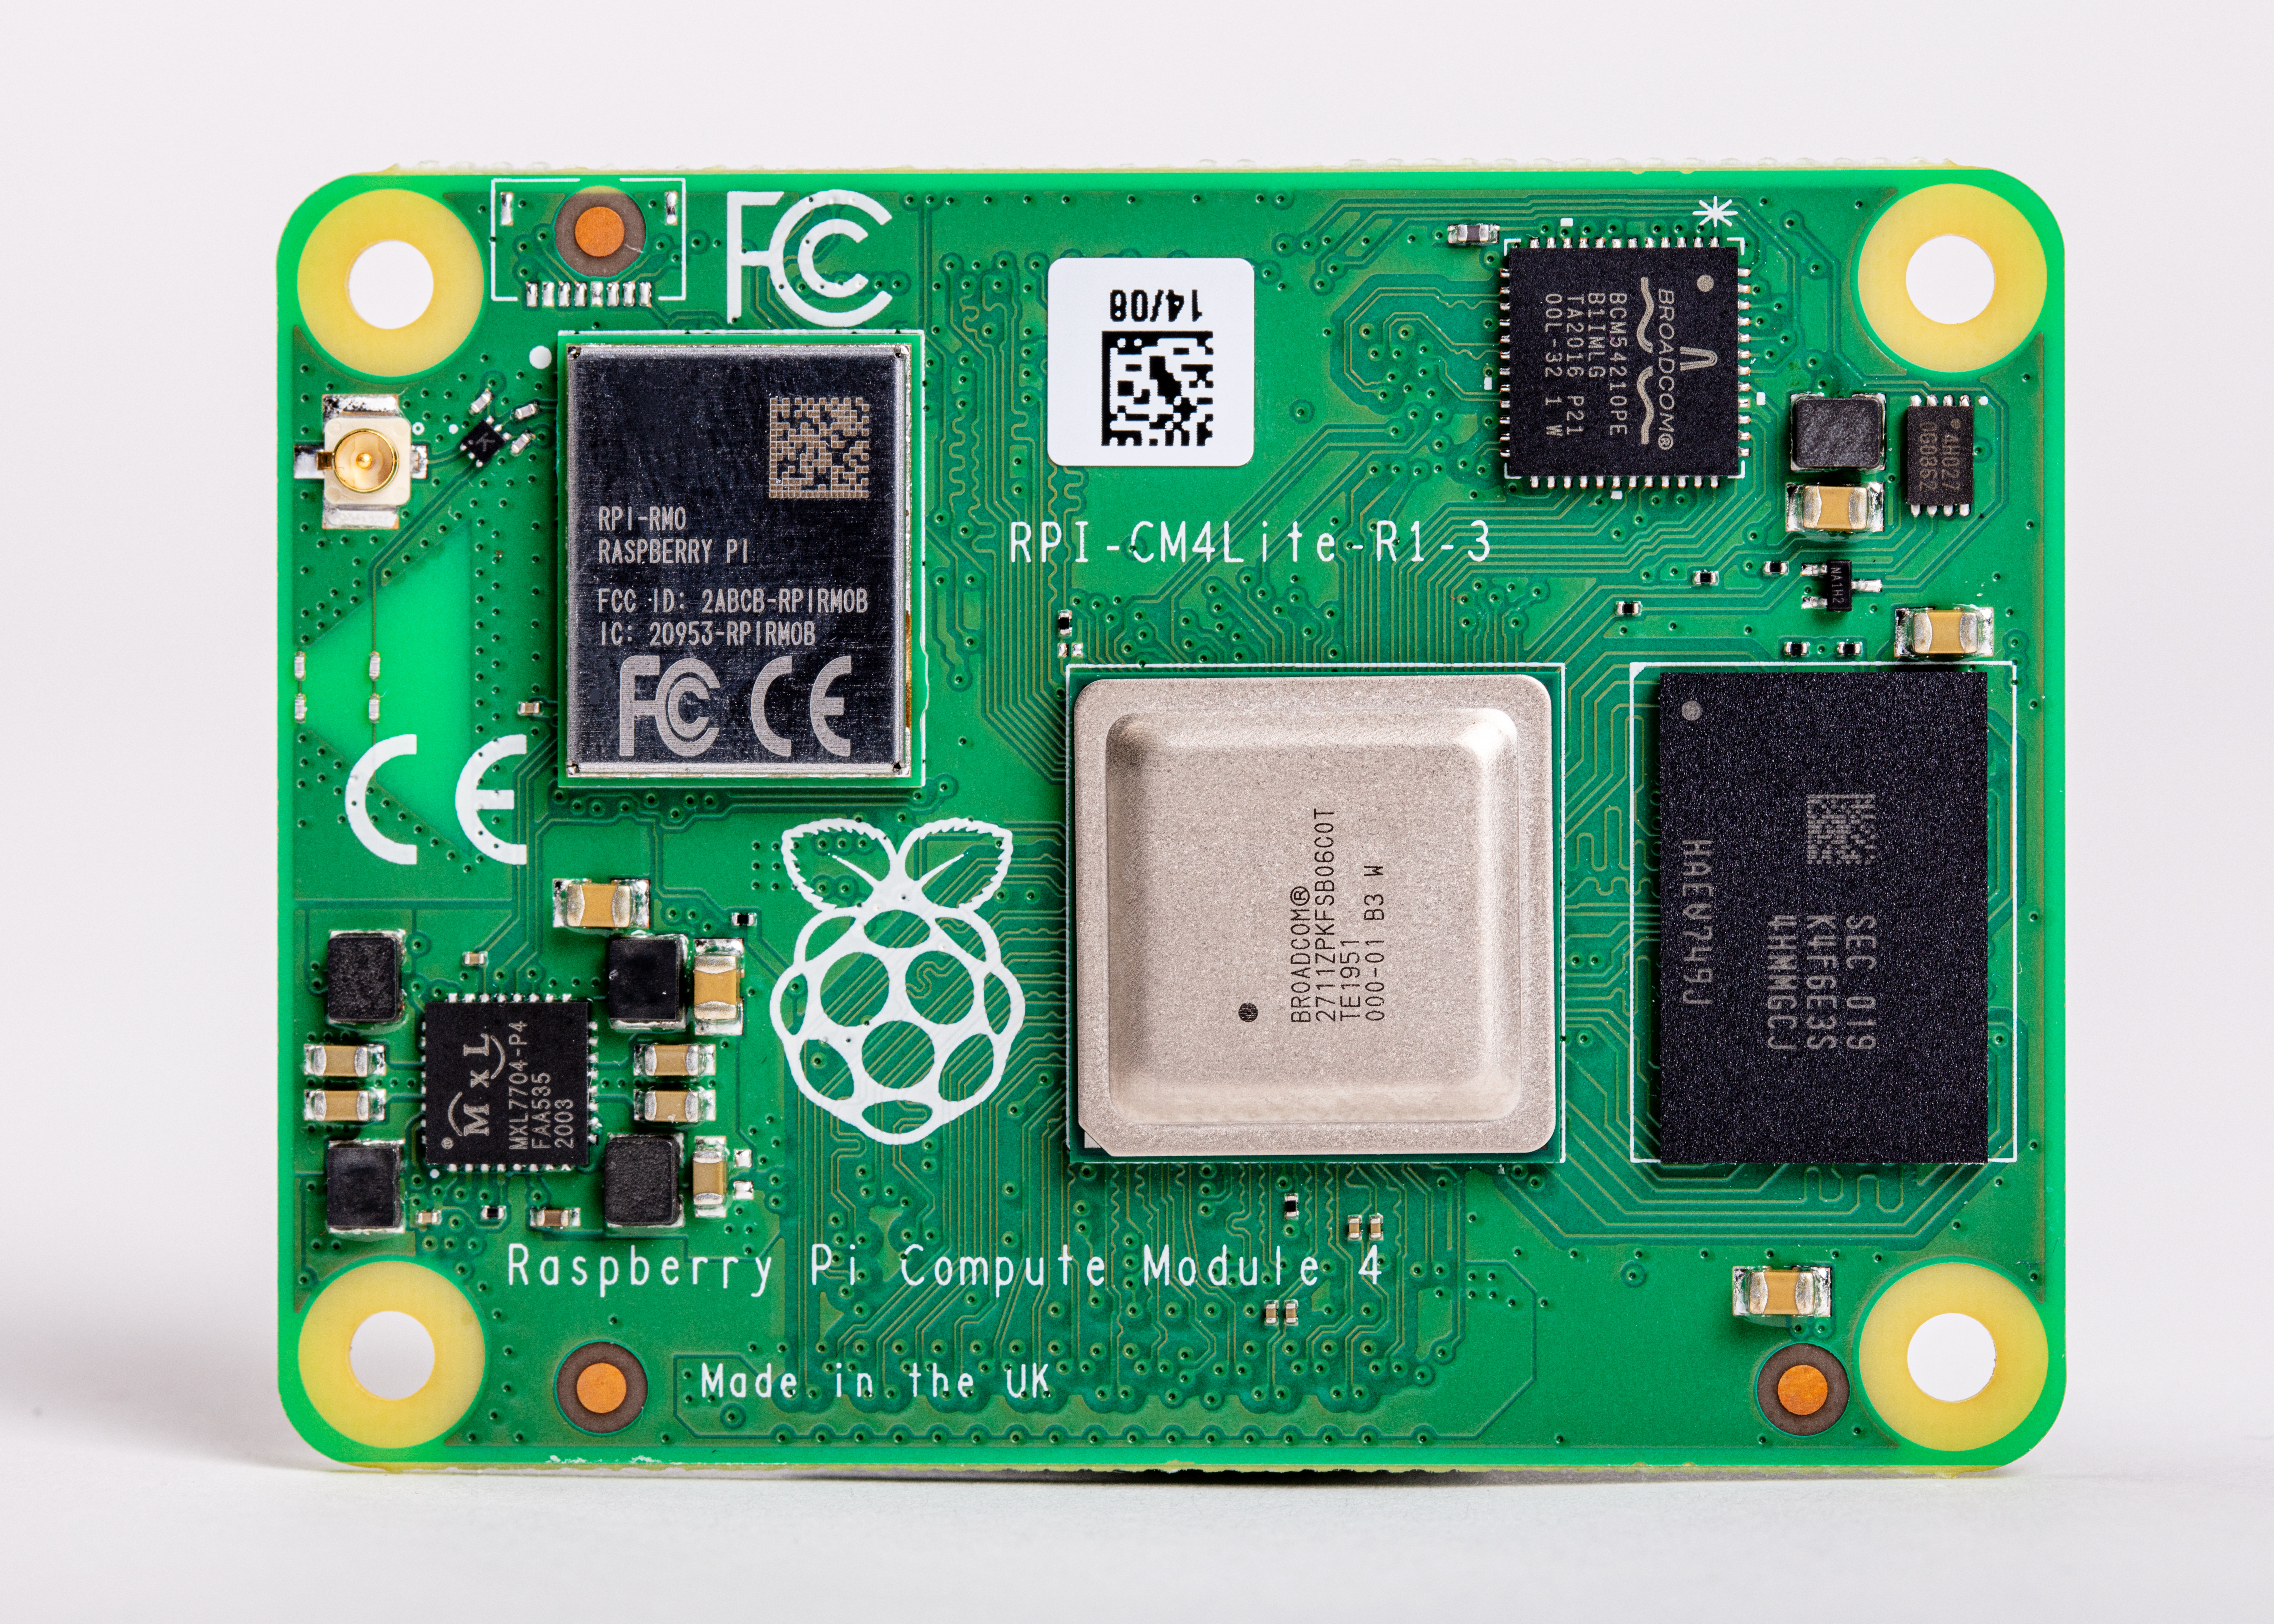 Raspberry Pi Compute Module 4 with WiFi 2GB RAM Lite